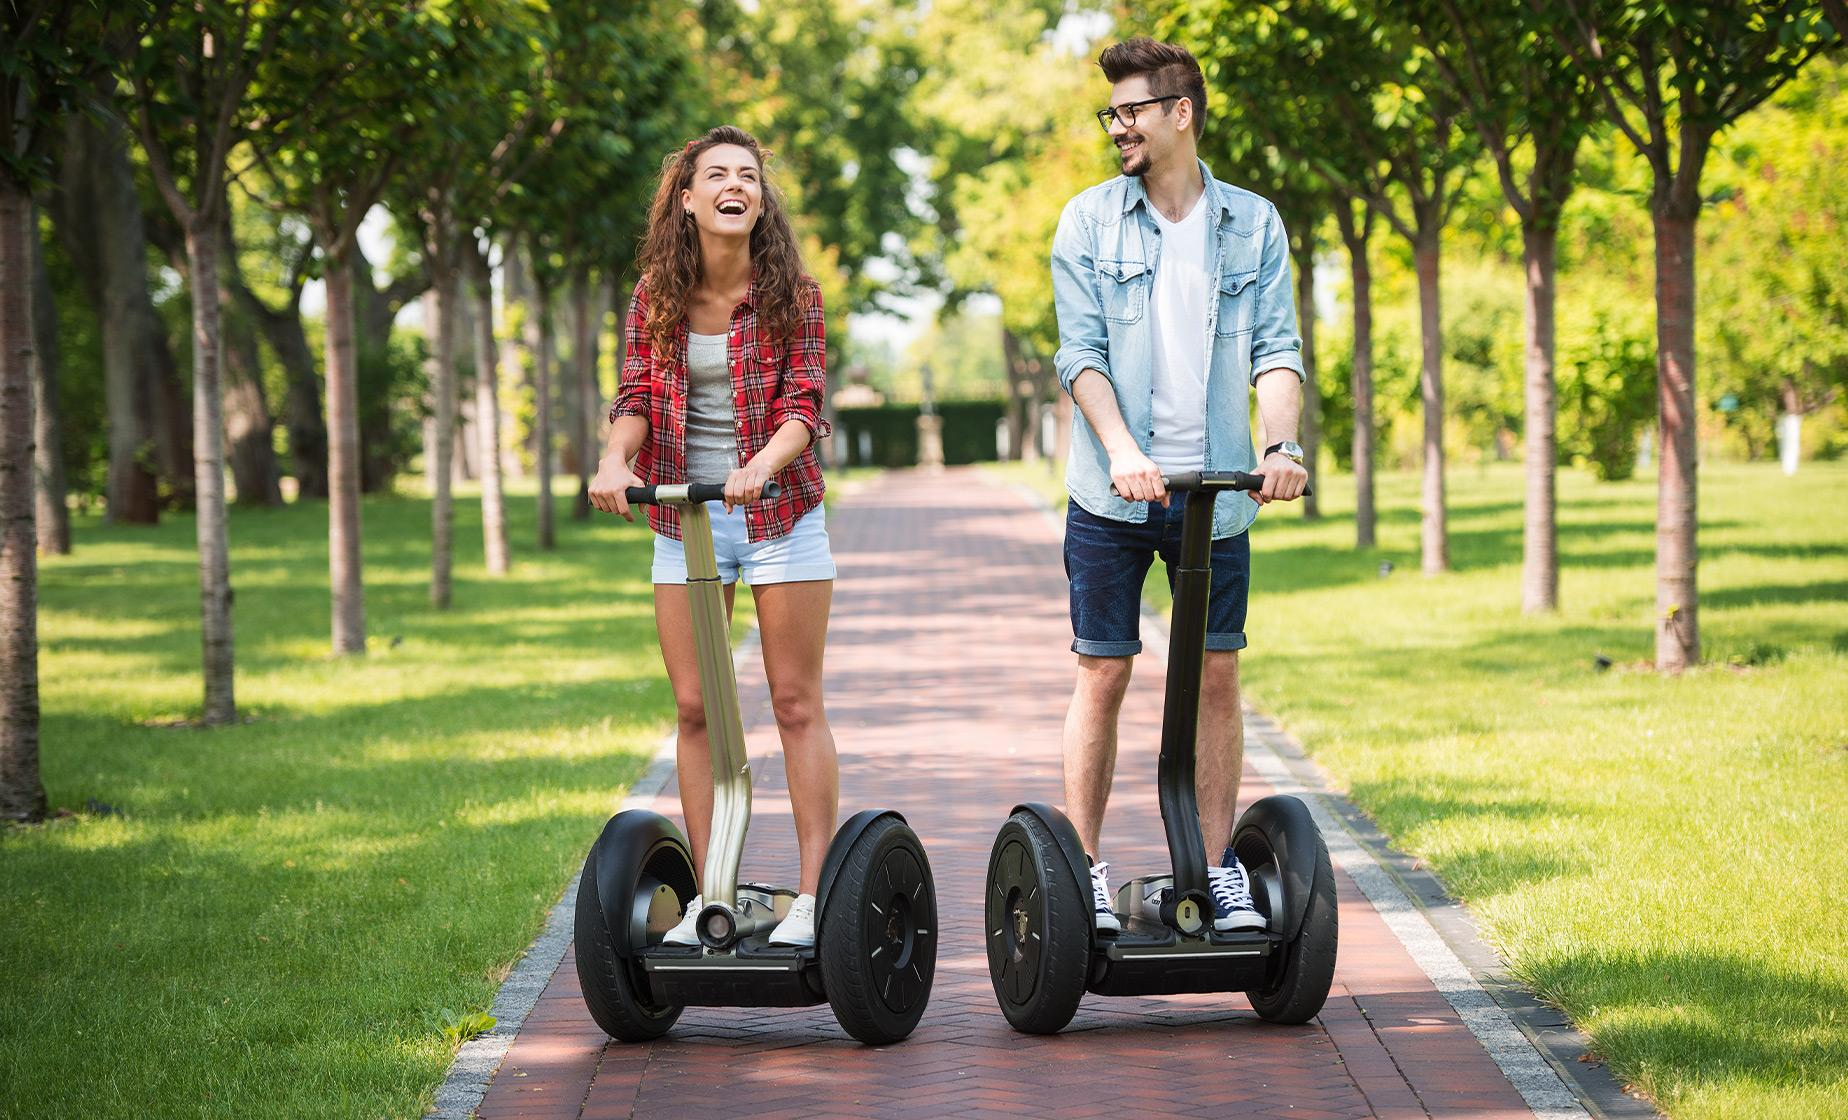 Honolulu Culture and History Segway Tour